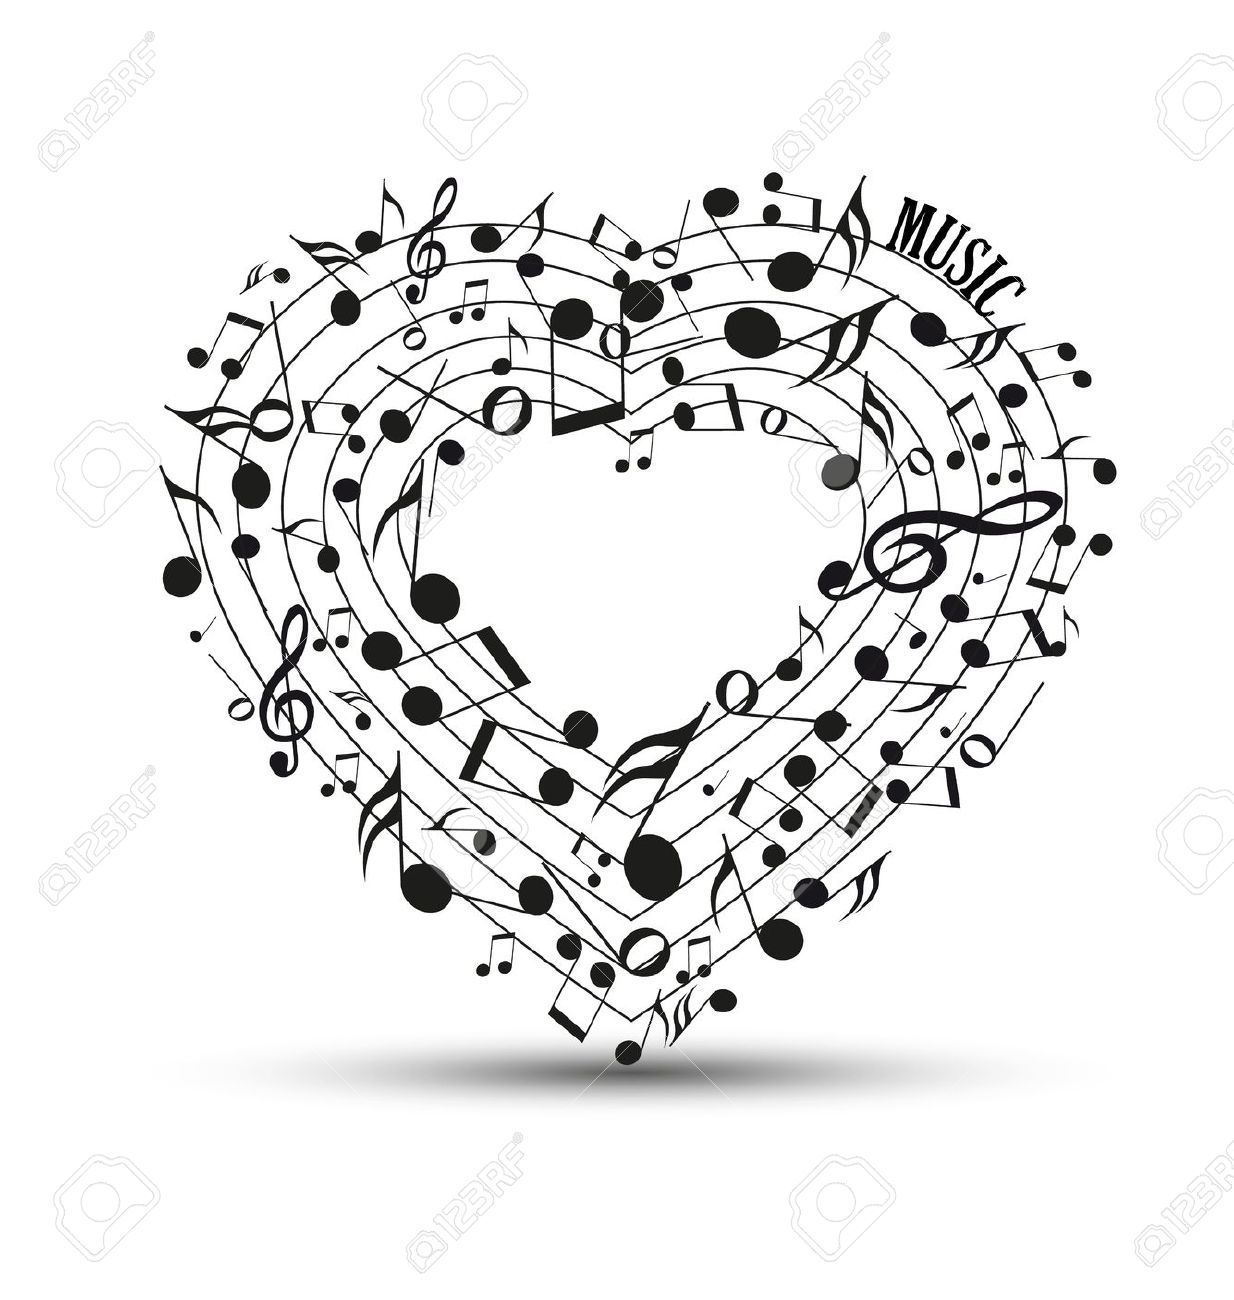 Musics musics pinterest embroidery amazon and youtube image de la catgorie decoration of musical notes in the shape of a heart biocorpaavc Gallery